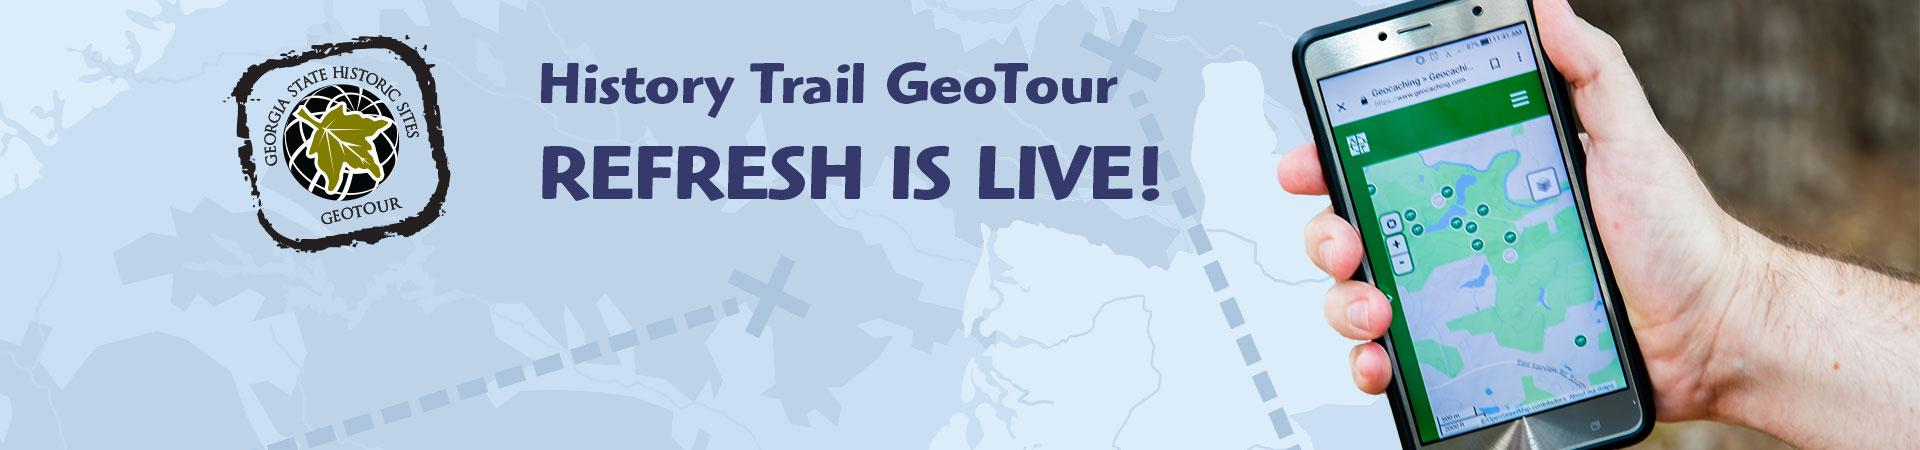 History Trail GeoTour Is Live